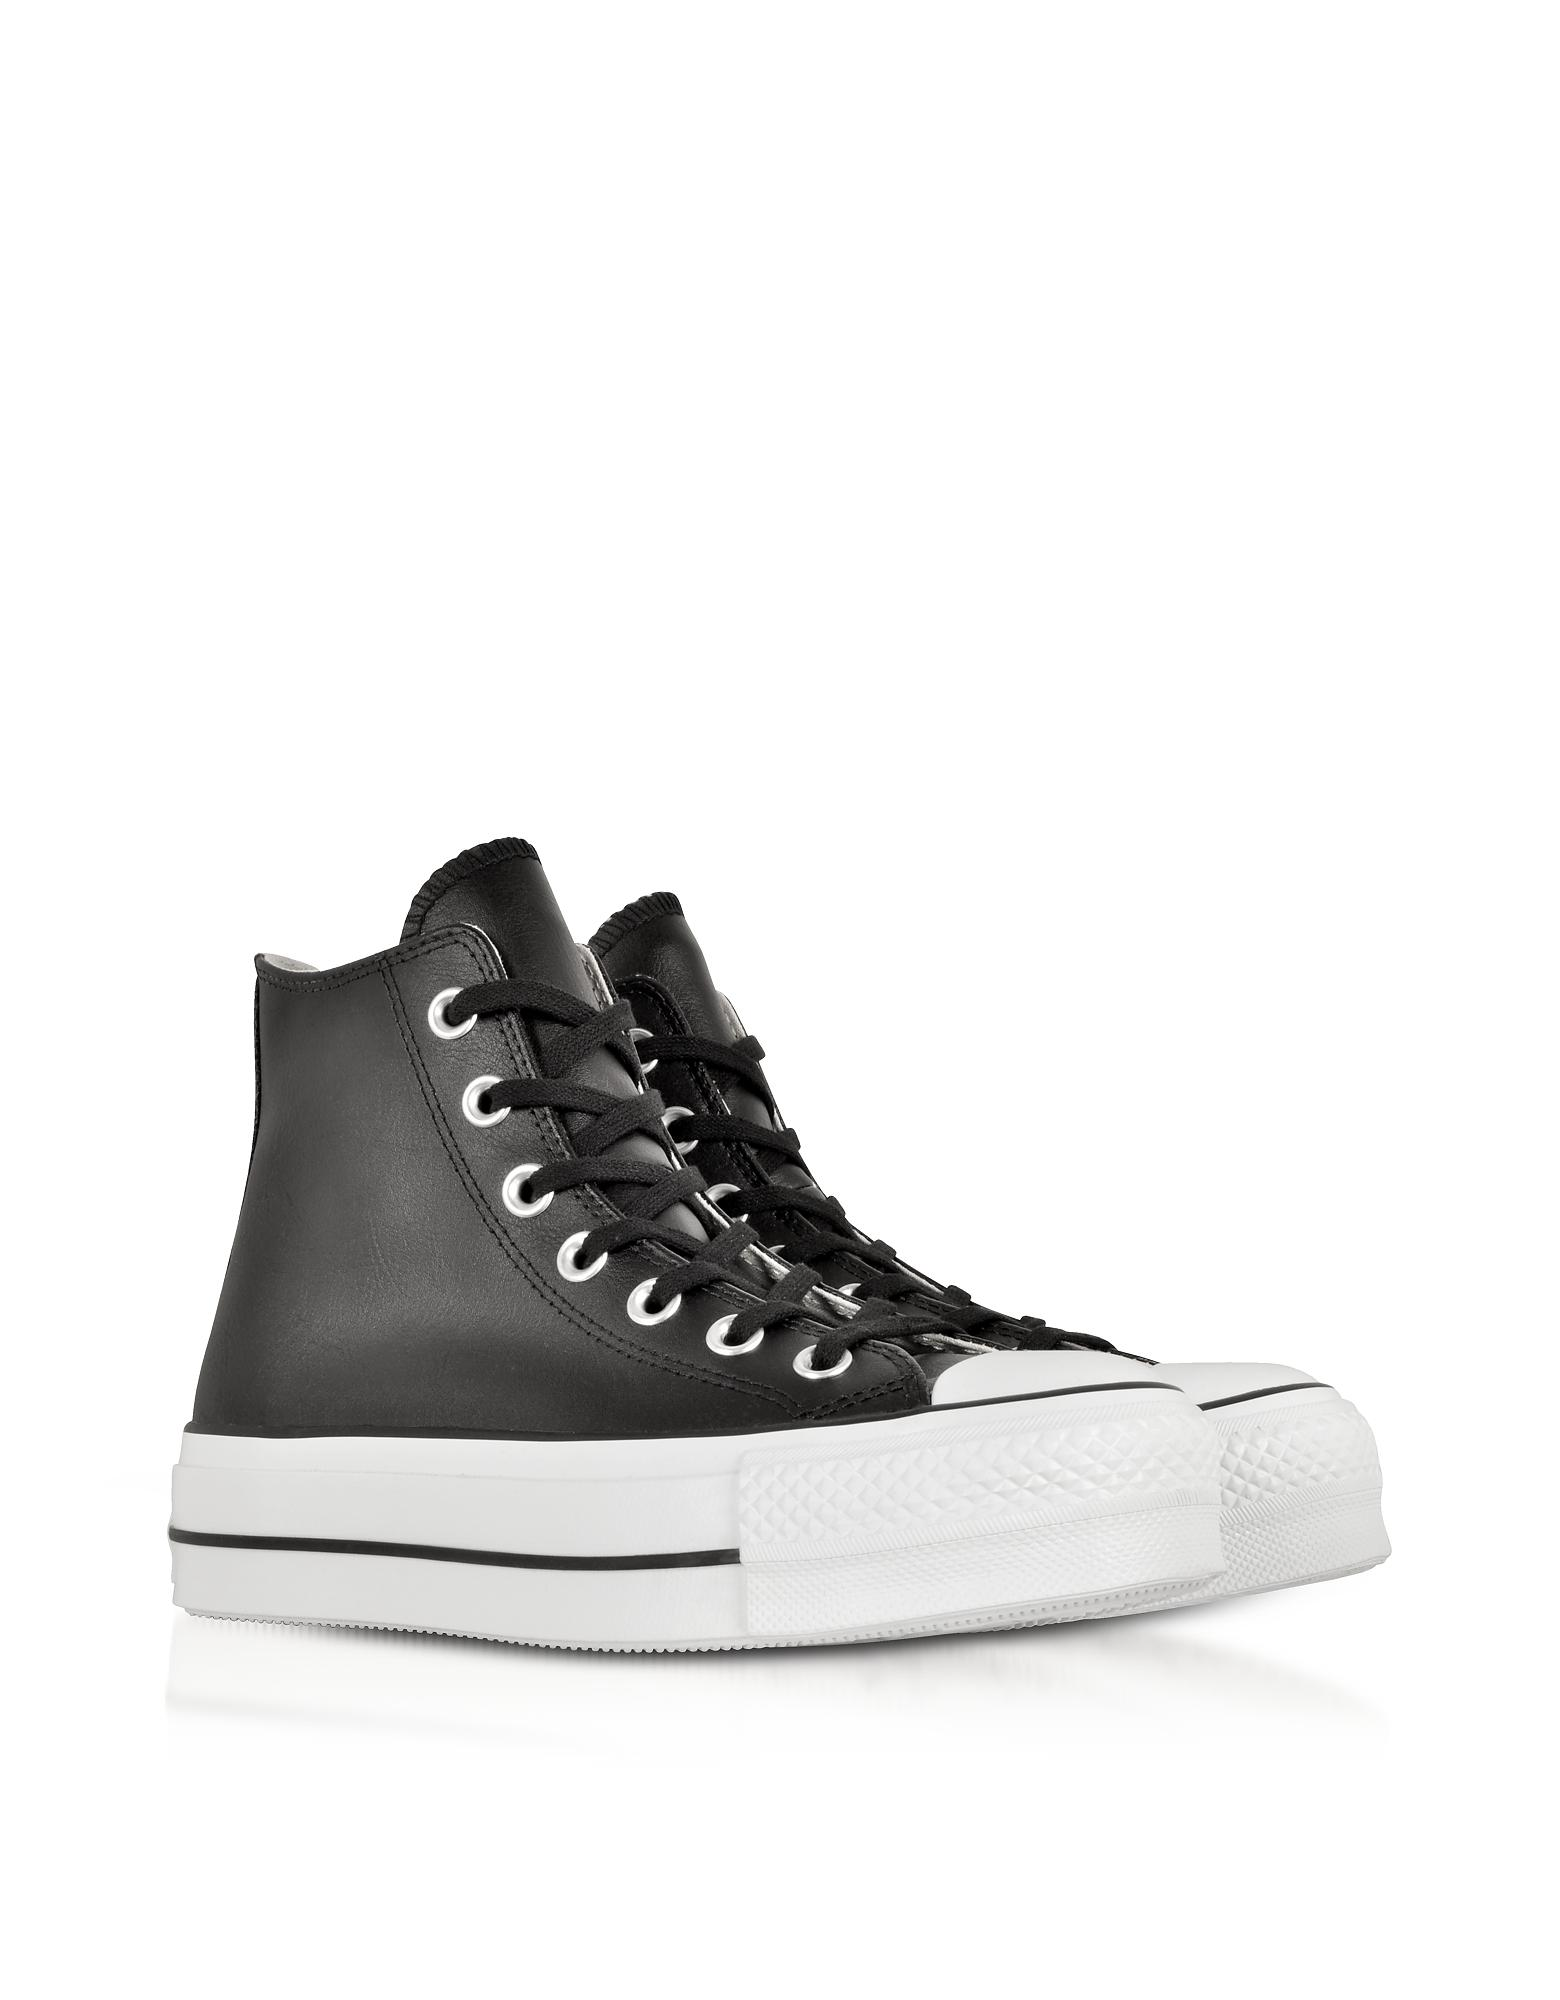 8be6d1abba Converse Chuck Taylor All Star Lift Clean Black Leather High Top Platform  Sneakers in Black - Lyst